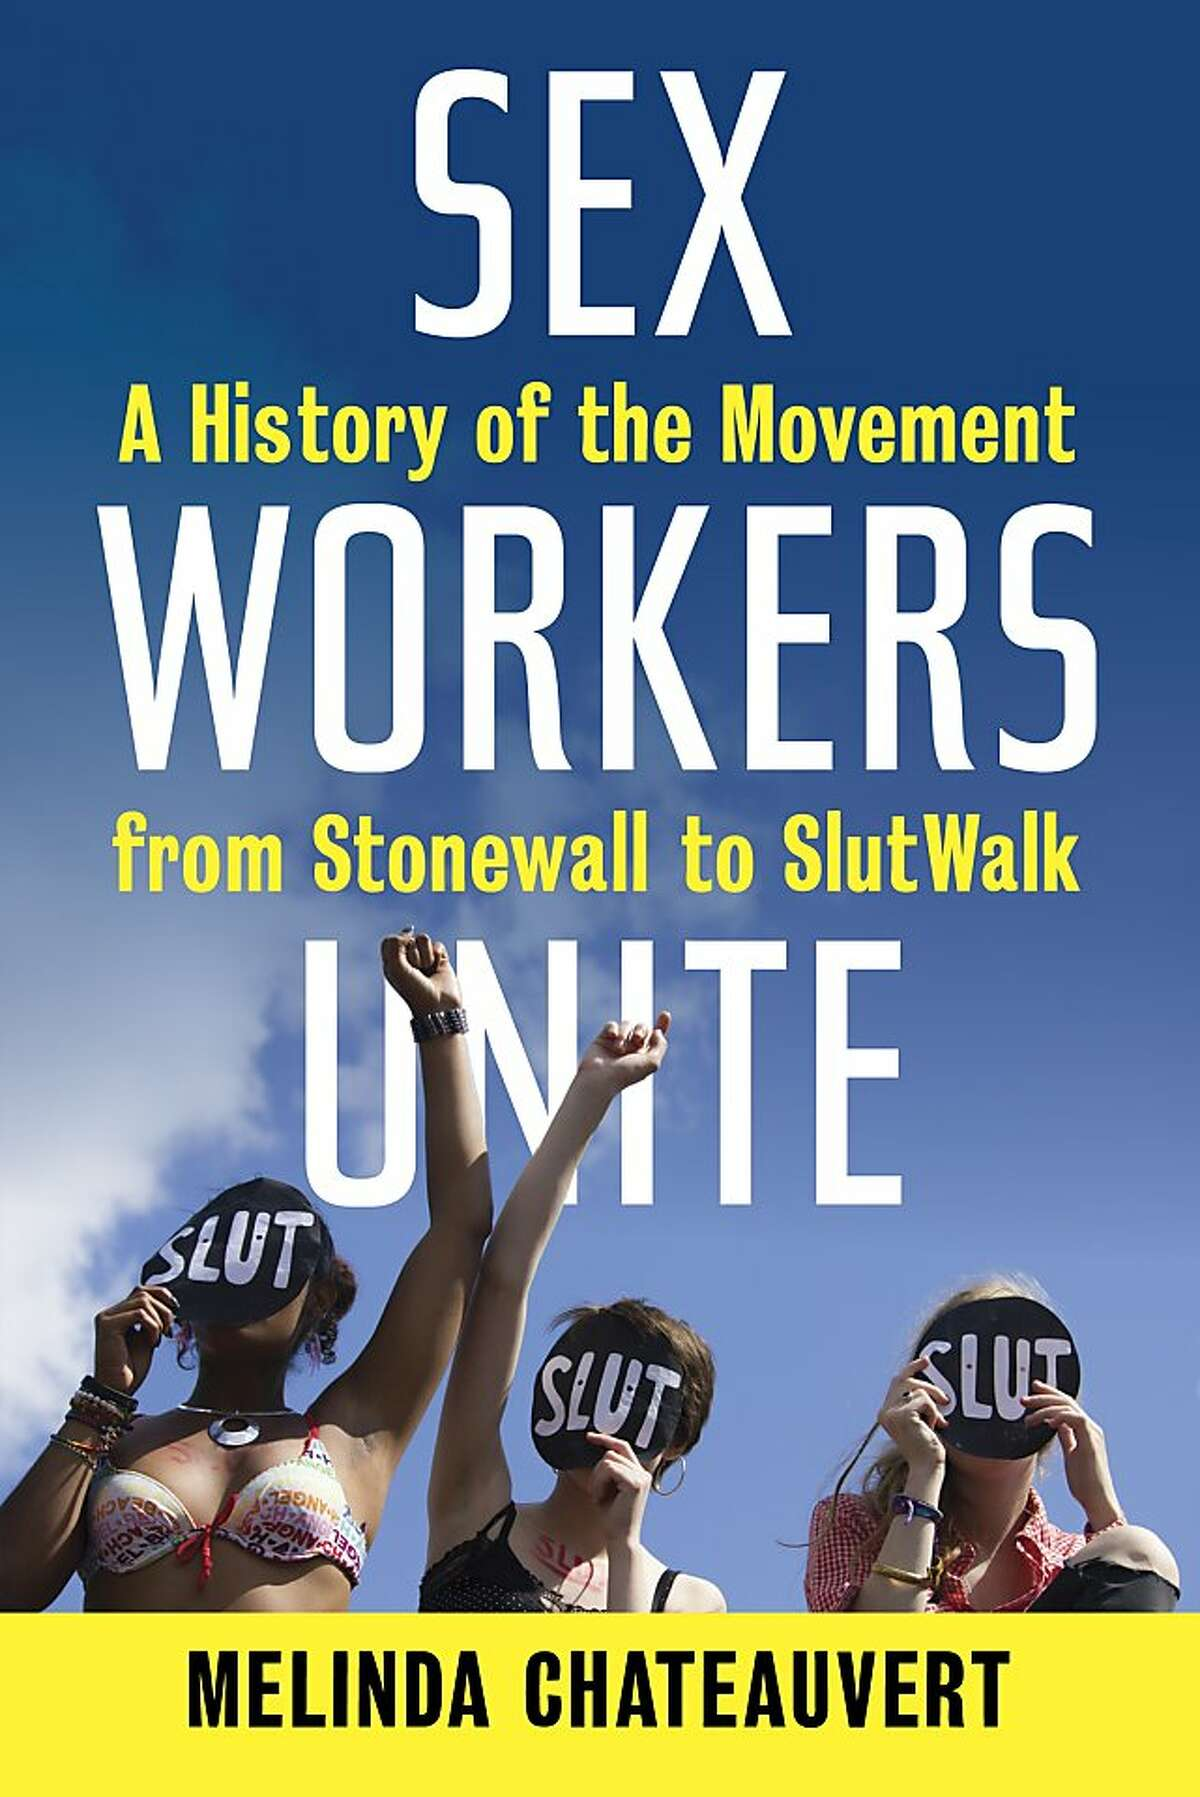 Sex Workers Unite: A History of the Movement From Stonewall to SlutWalk, Melinda Chateauvert